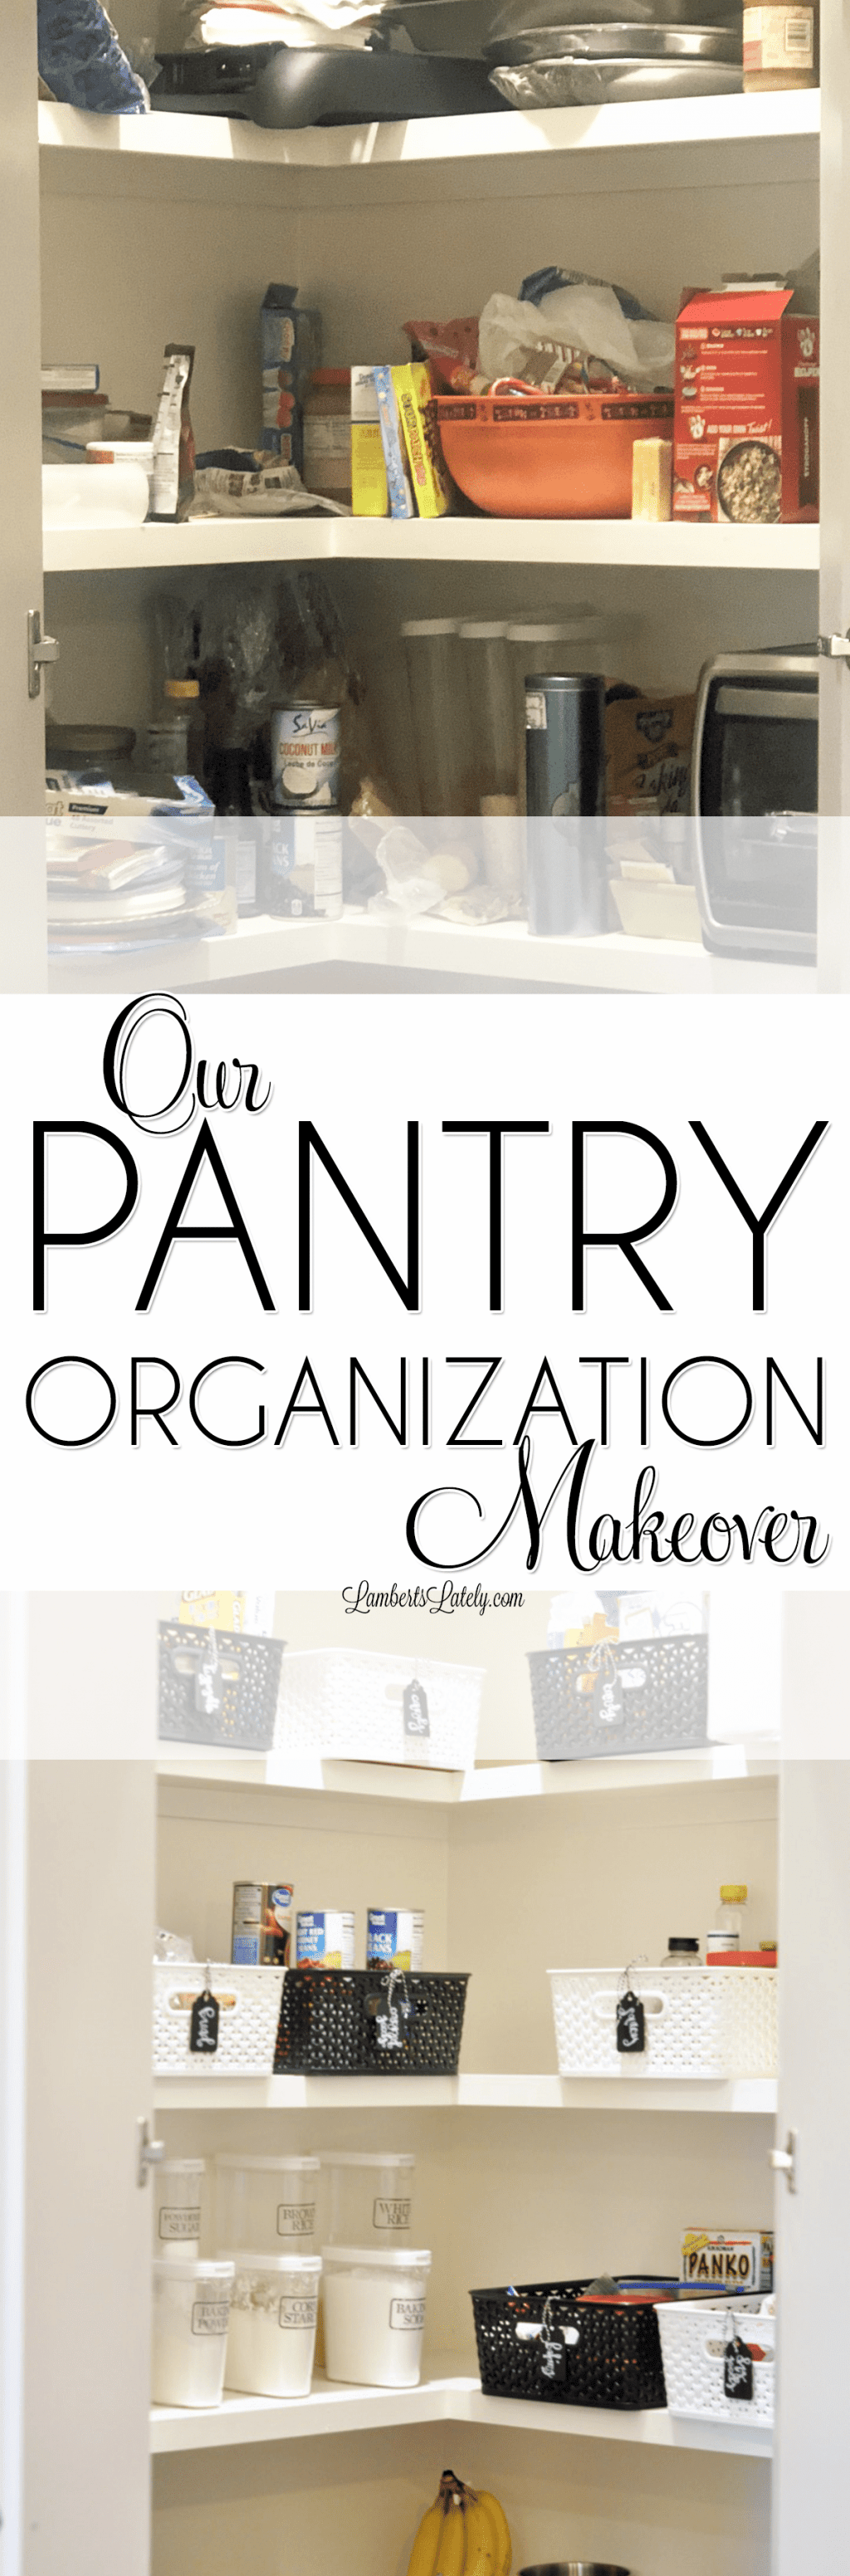 The before and after of this DIY pantry organization makeover is awesome! She completely redid her walk-in pantry on a budget with cute, farmhouse touches.